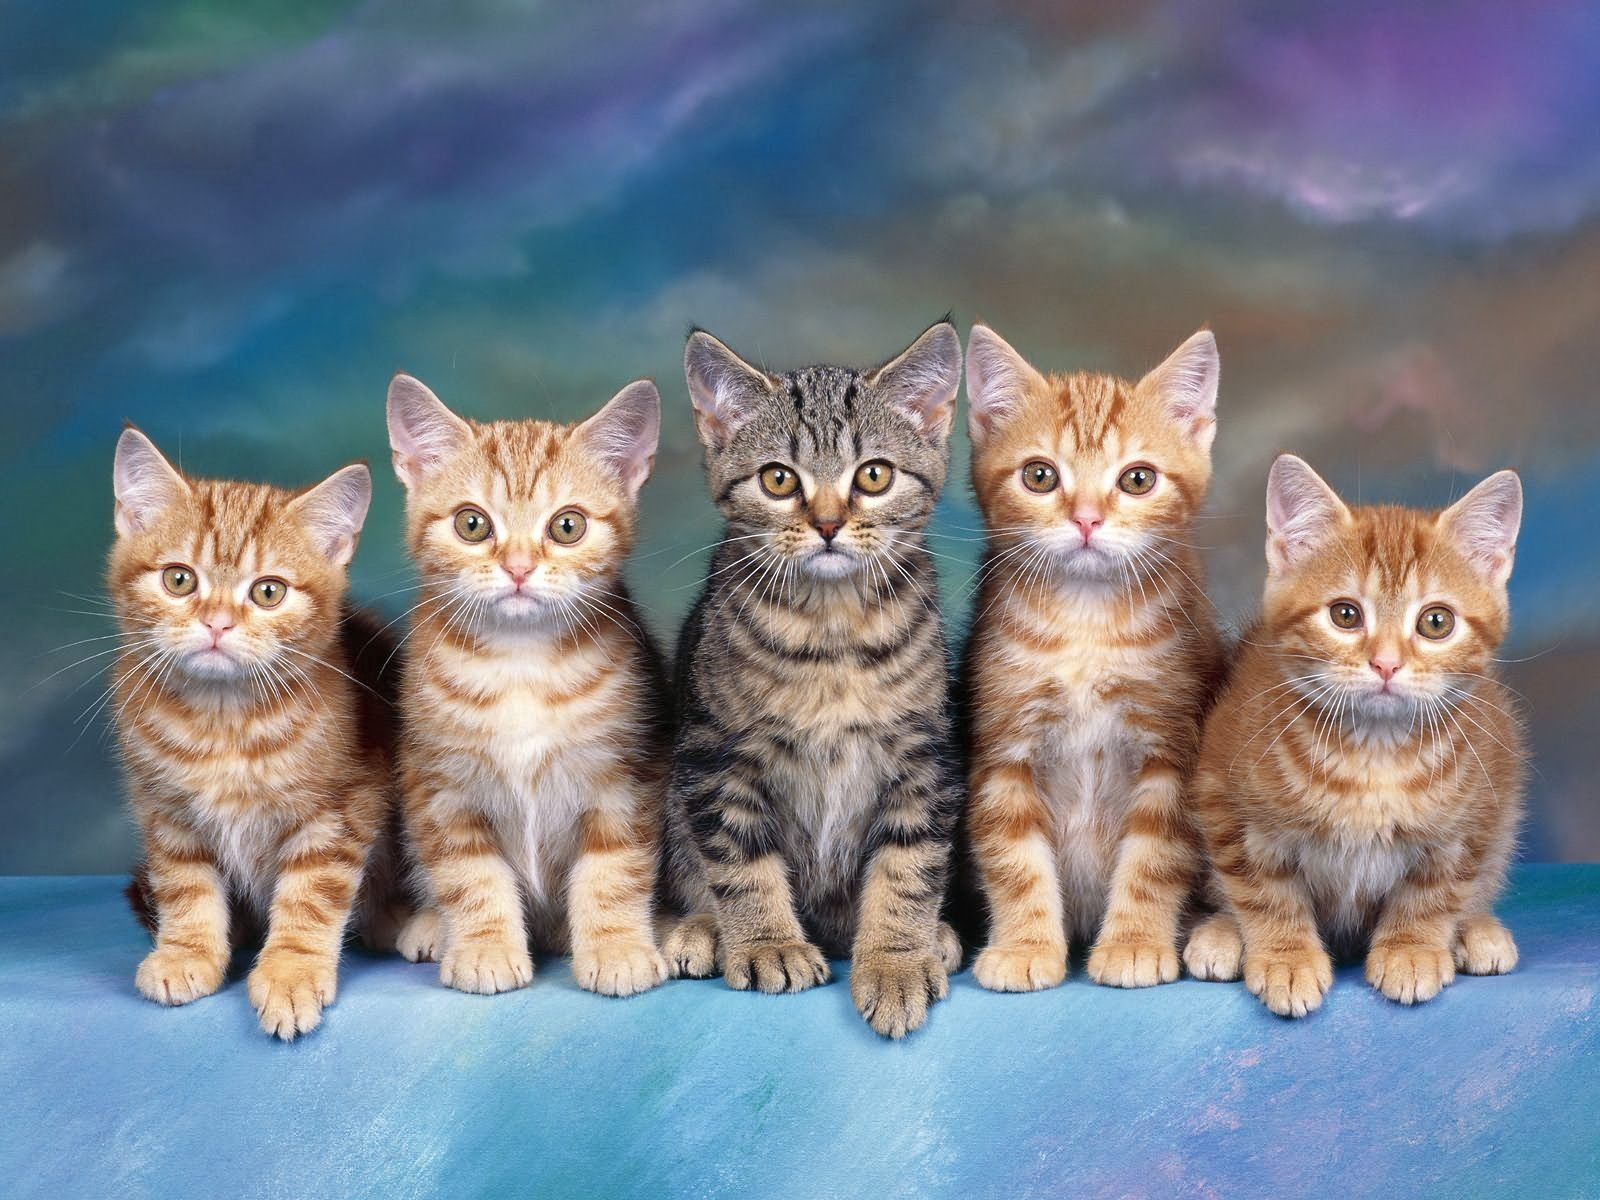 129800 download wallpaper Animals, Sit, Lot, Kittens screensavers and pictures for free